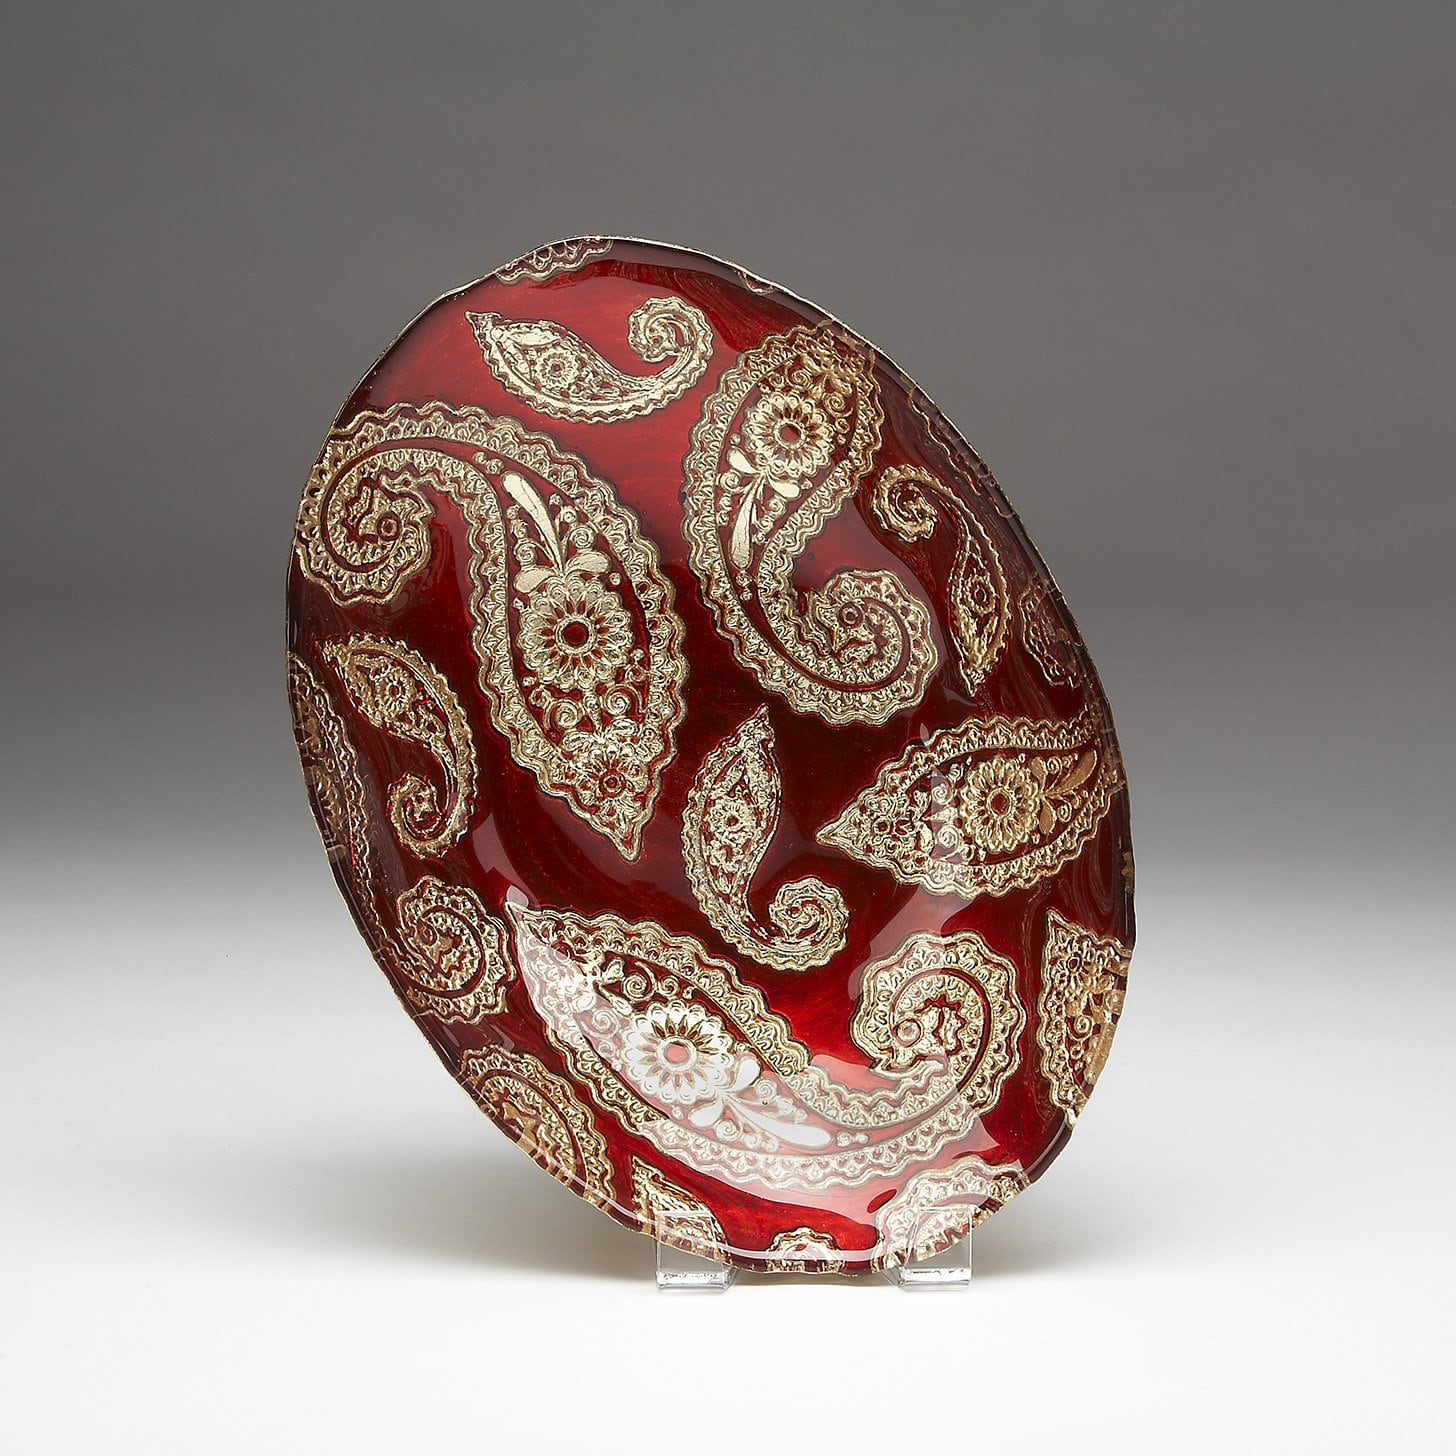 Red Pomegranate Gilded Tableware Paisley Red Gold Oval Bowl